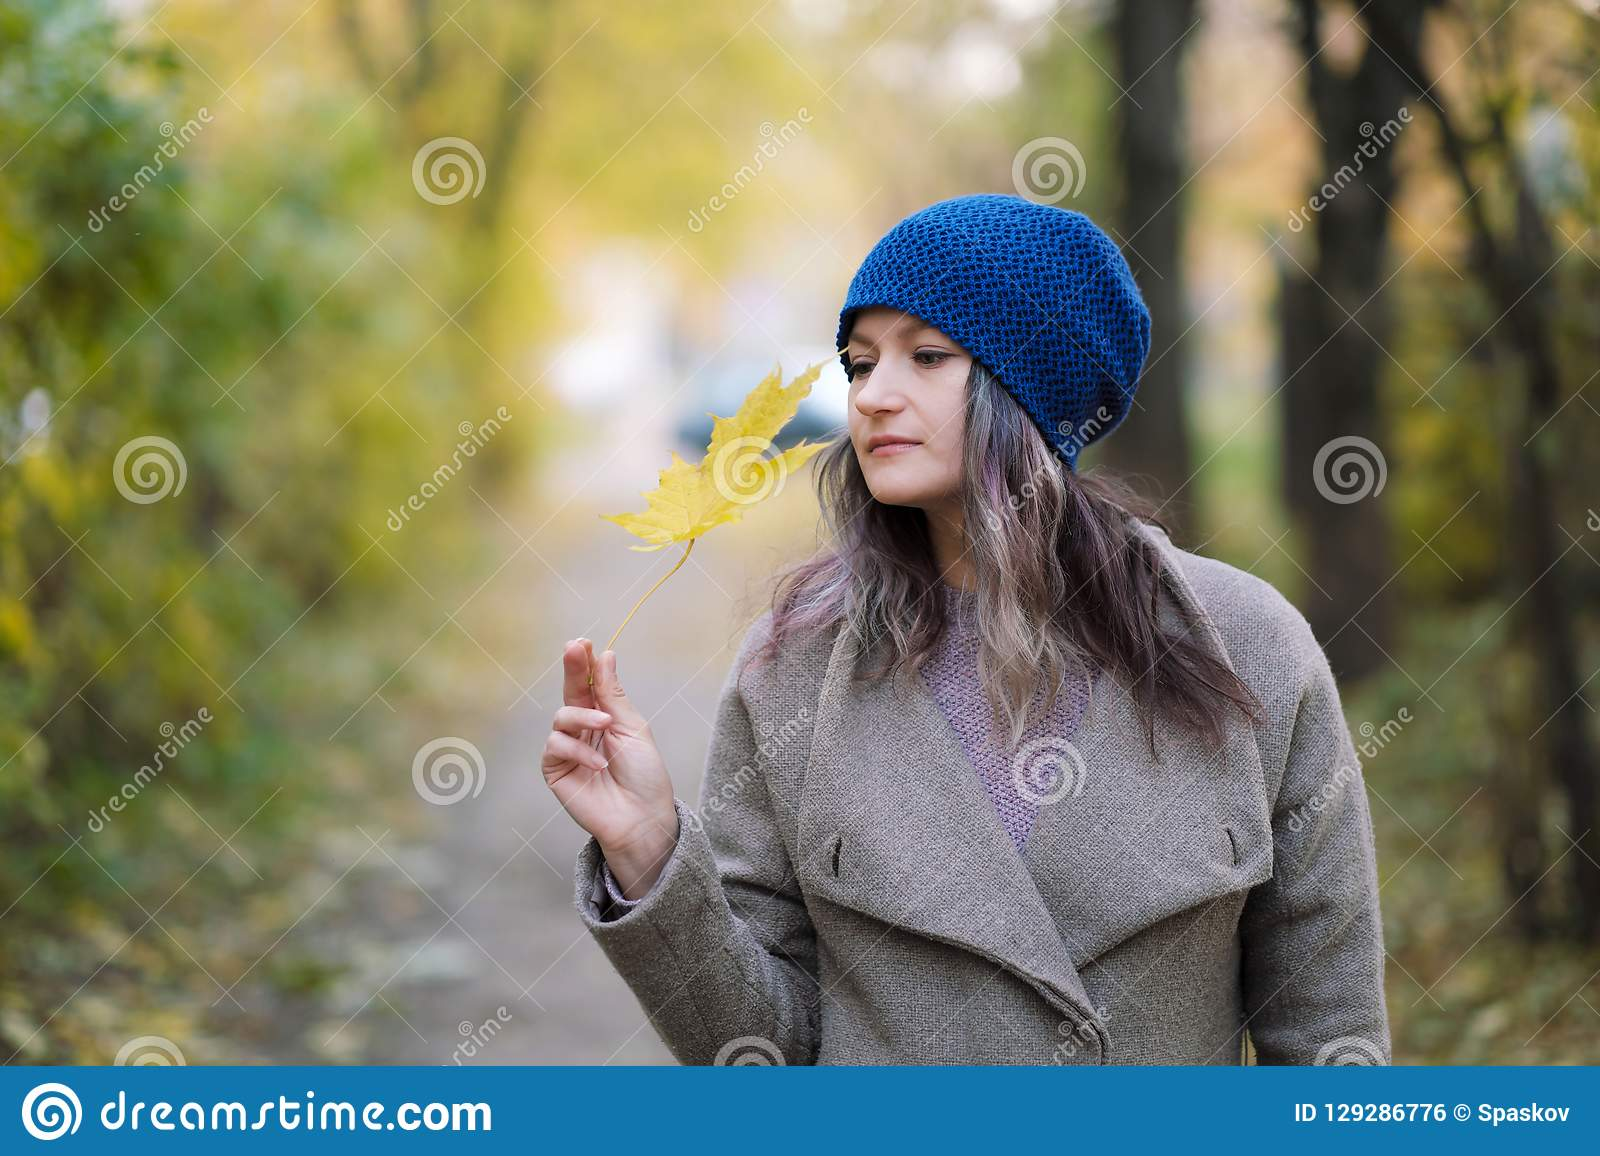 The girl in a coat and blue hat on a background of autumn trees and maple leaves.